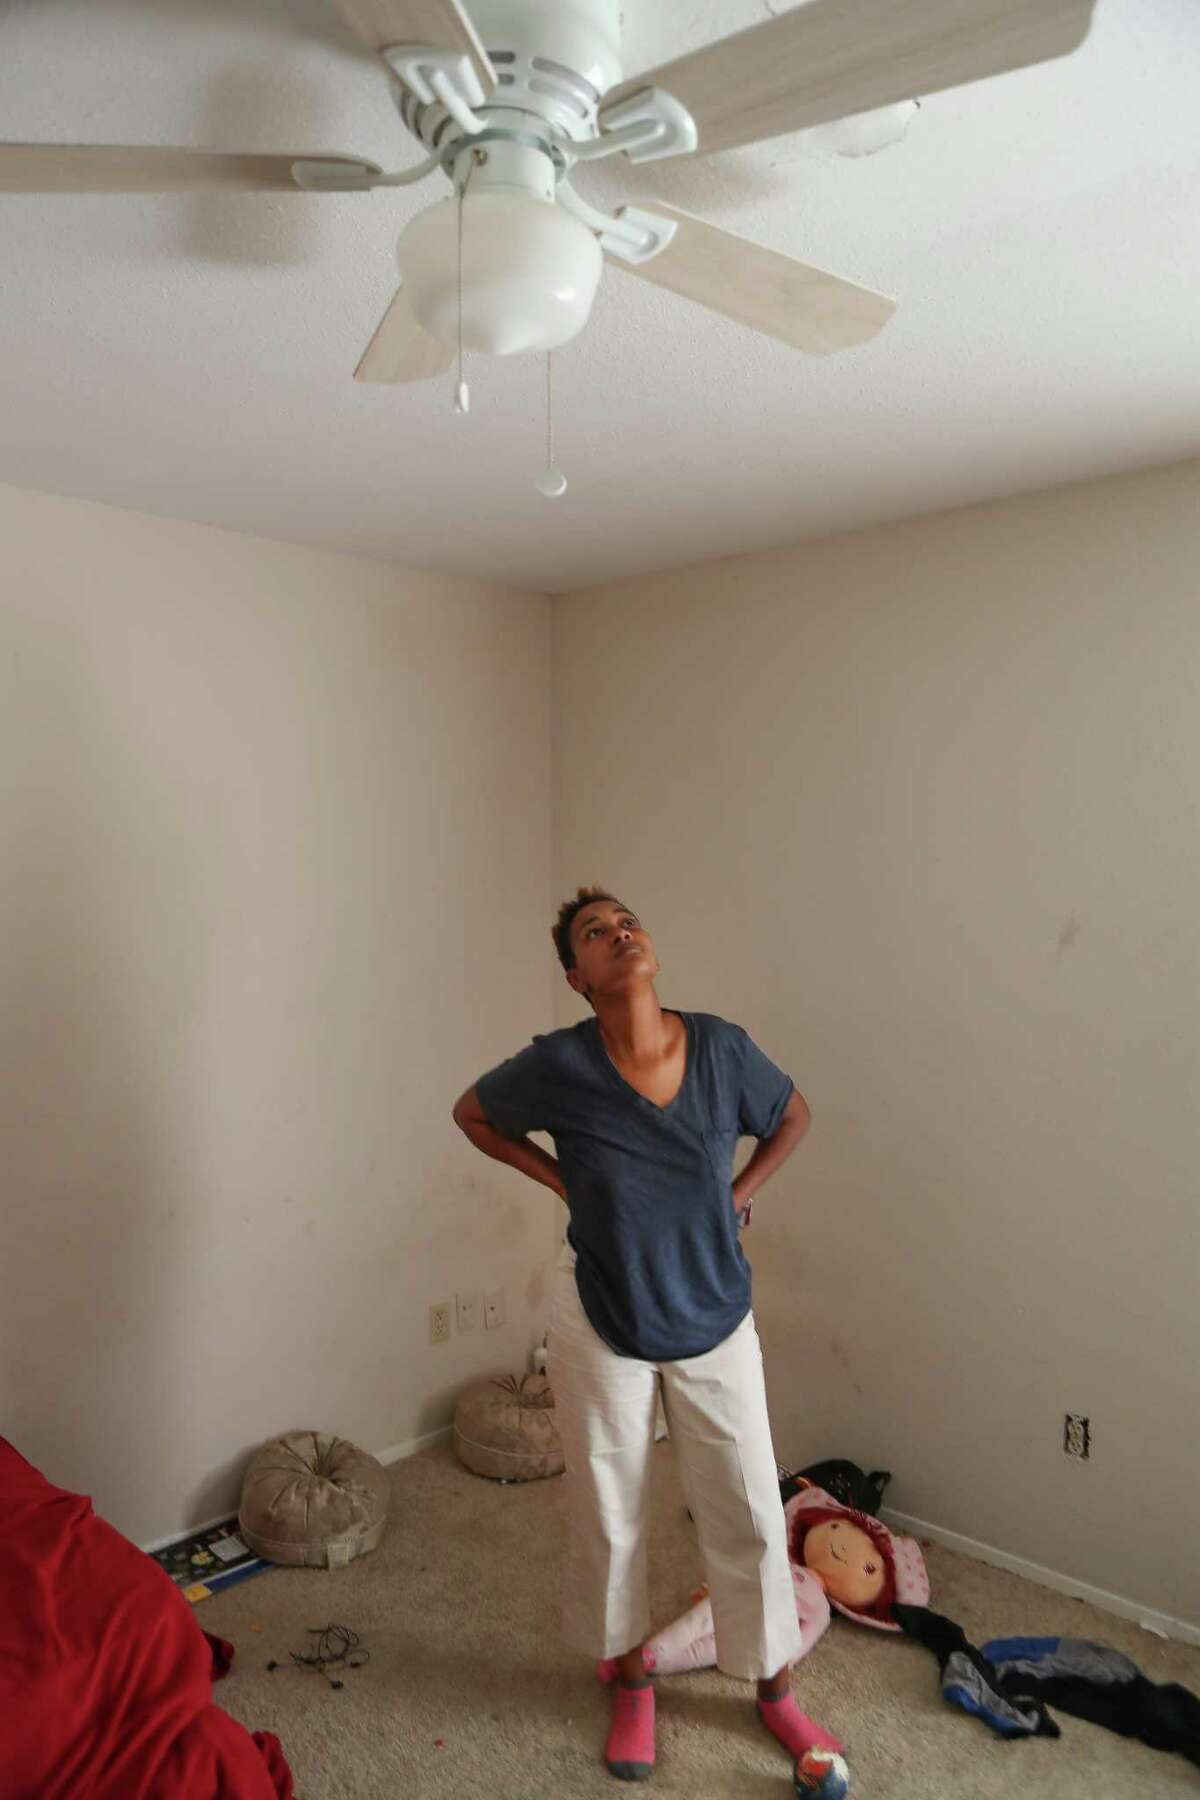 Cherika Argus, one of the victims of the Briscoe's Place fire, an unregulated rooming house with 20 or so windowless bedrooms rented out to people who needed a cheap place to live, talks about life after the fire Wednesday, Dec. 20, 2017, in Houston. ( Steve Gonzales / Houston Chronicle )